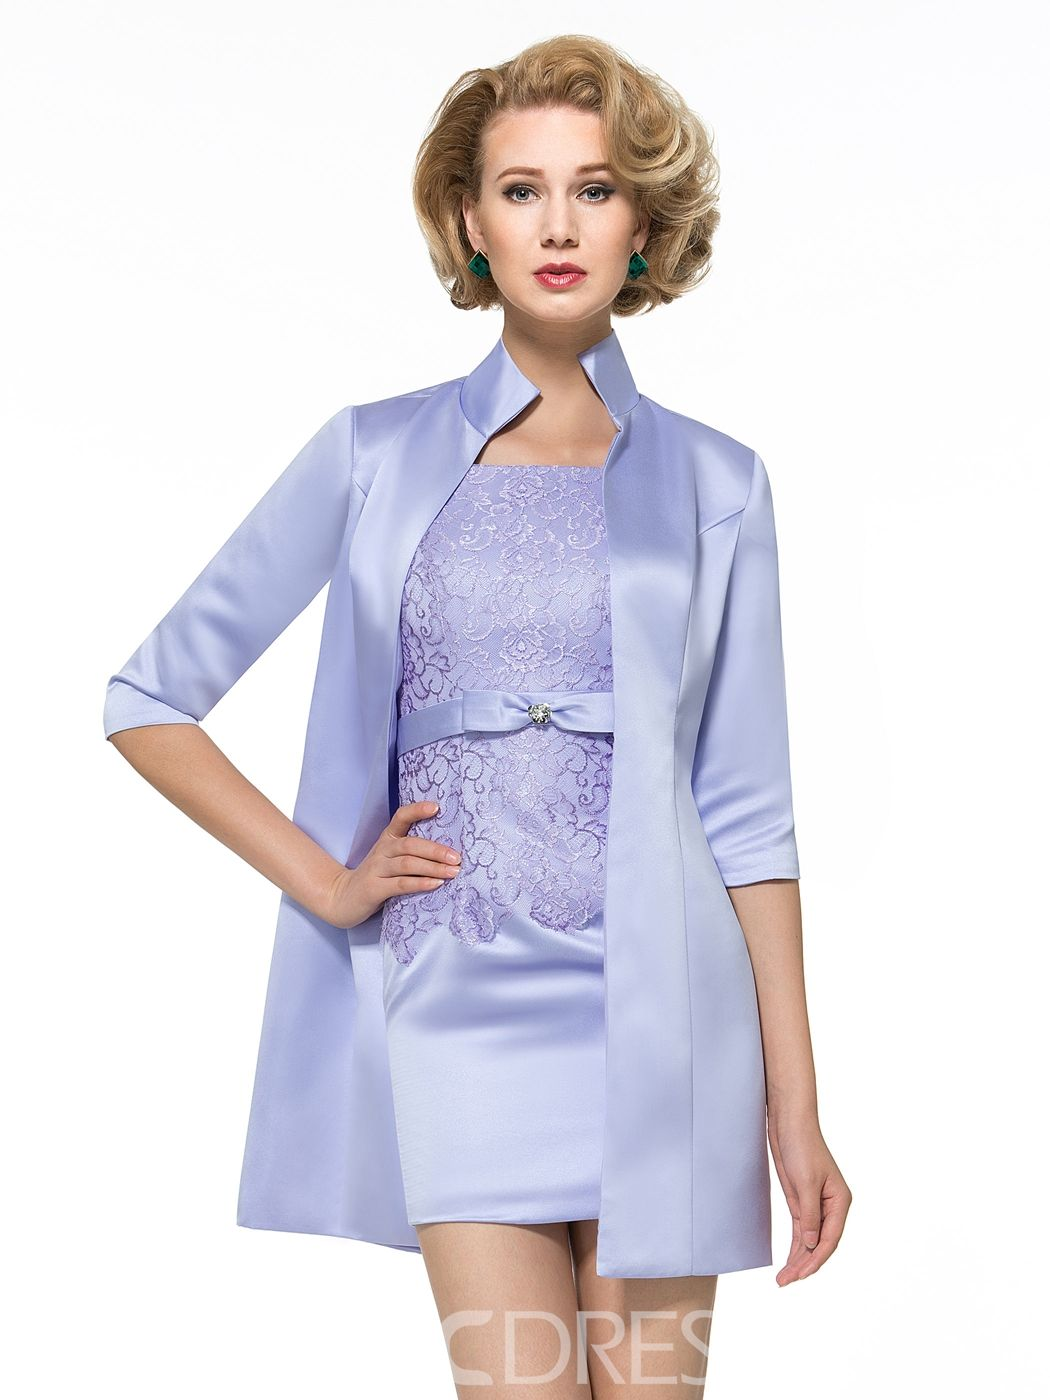 Beach wedding dresses guest  Charming Straps Sheath Short Mother of the Bride Dress with Jacket